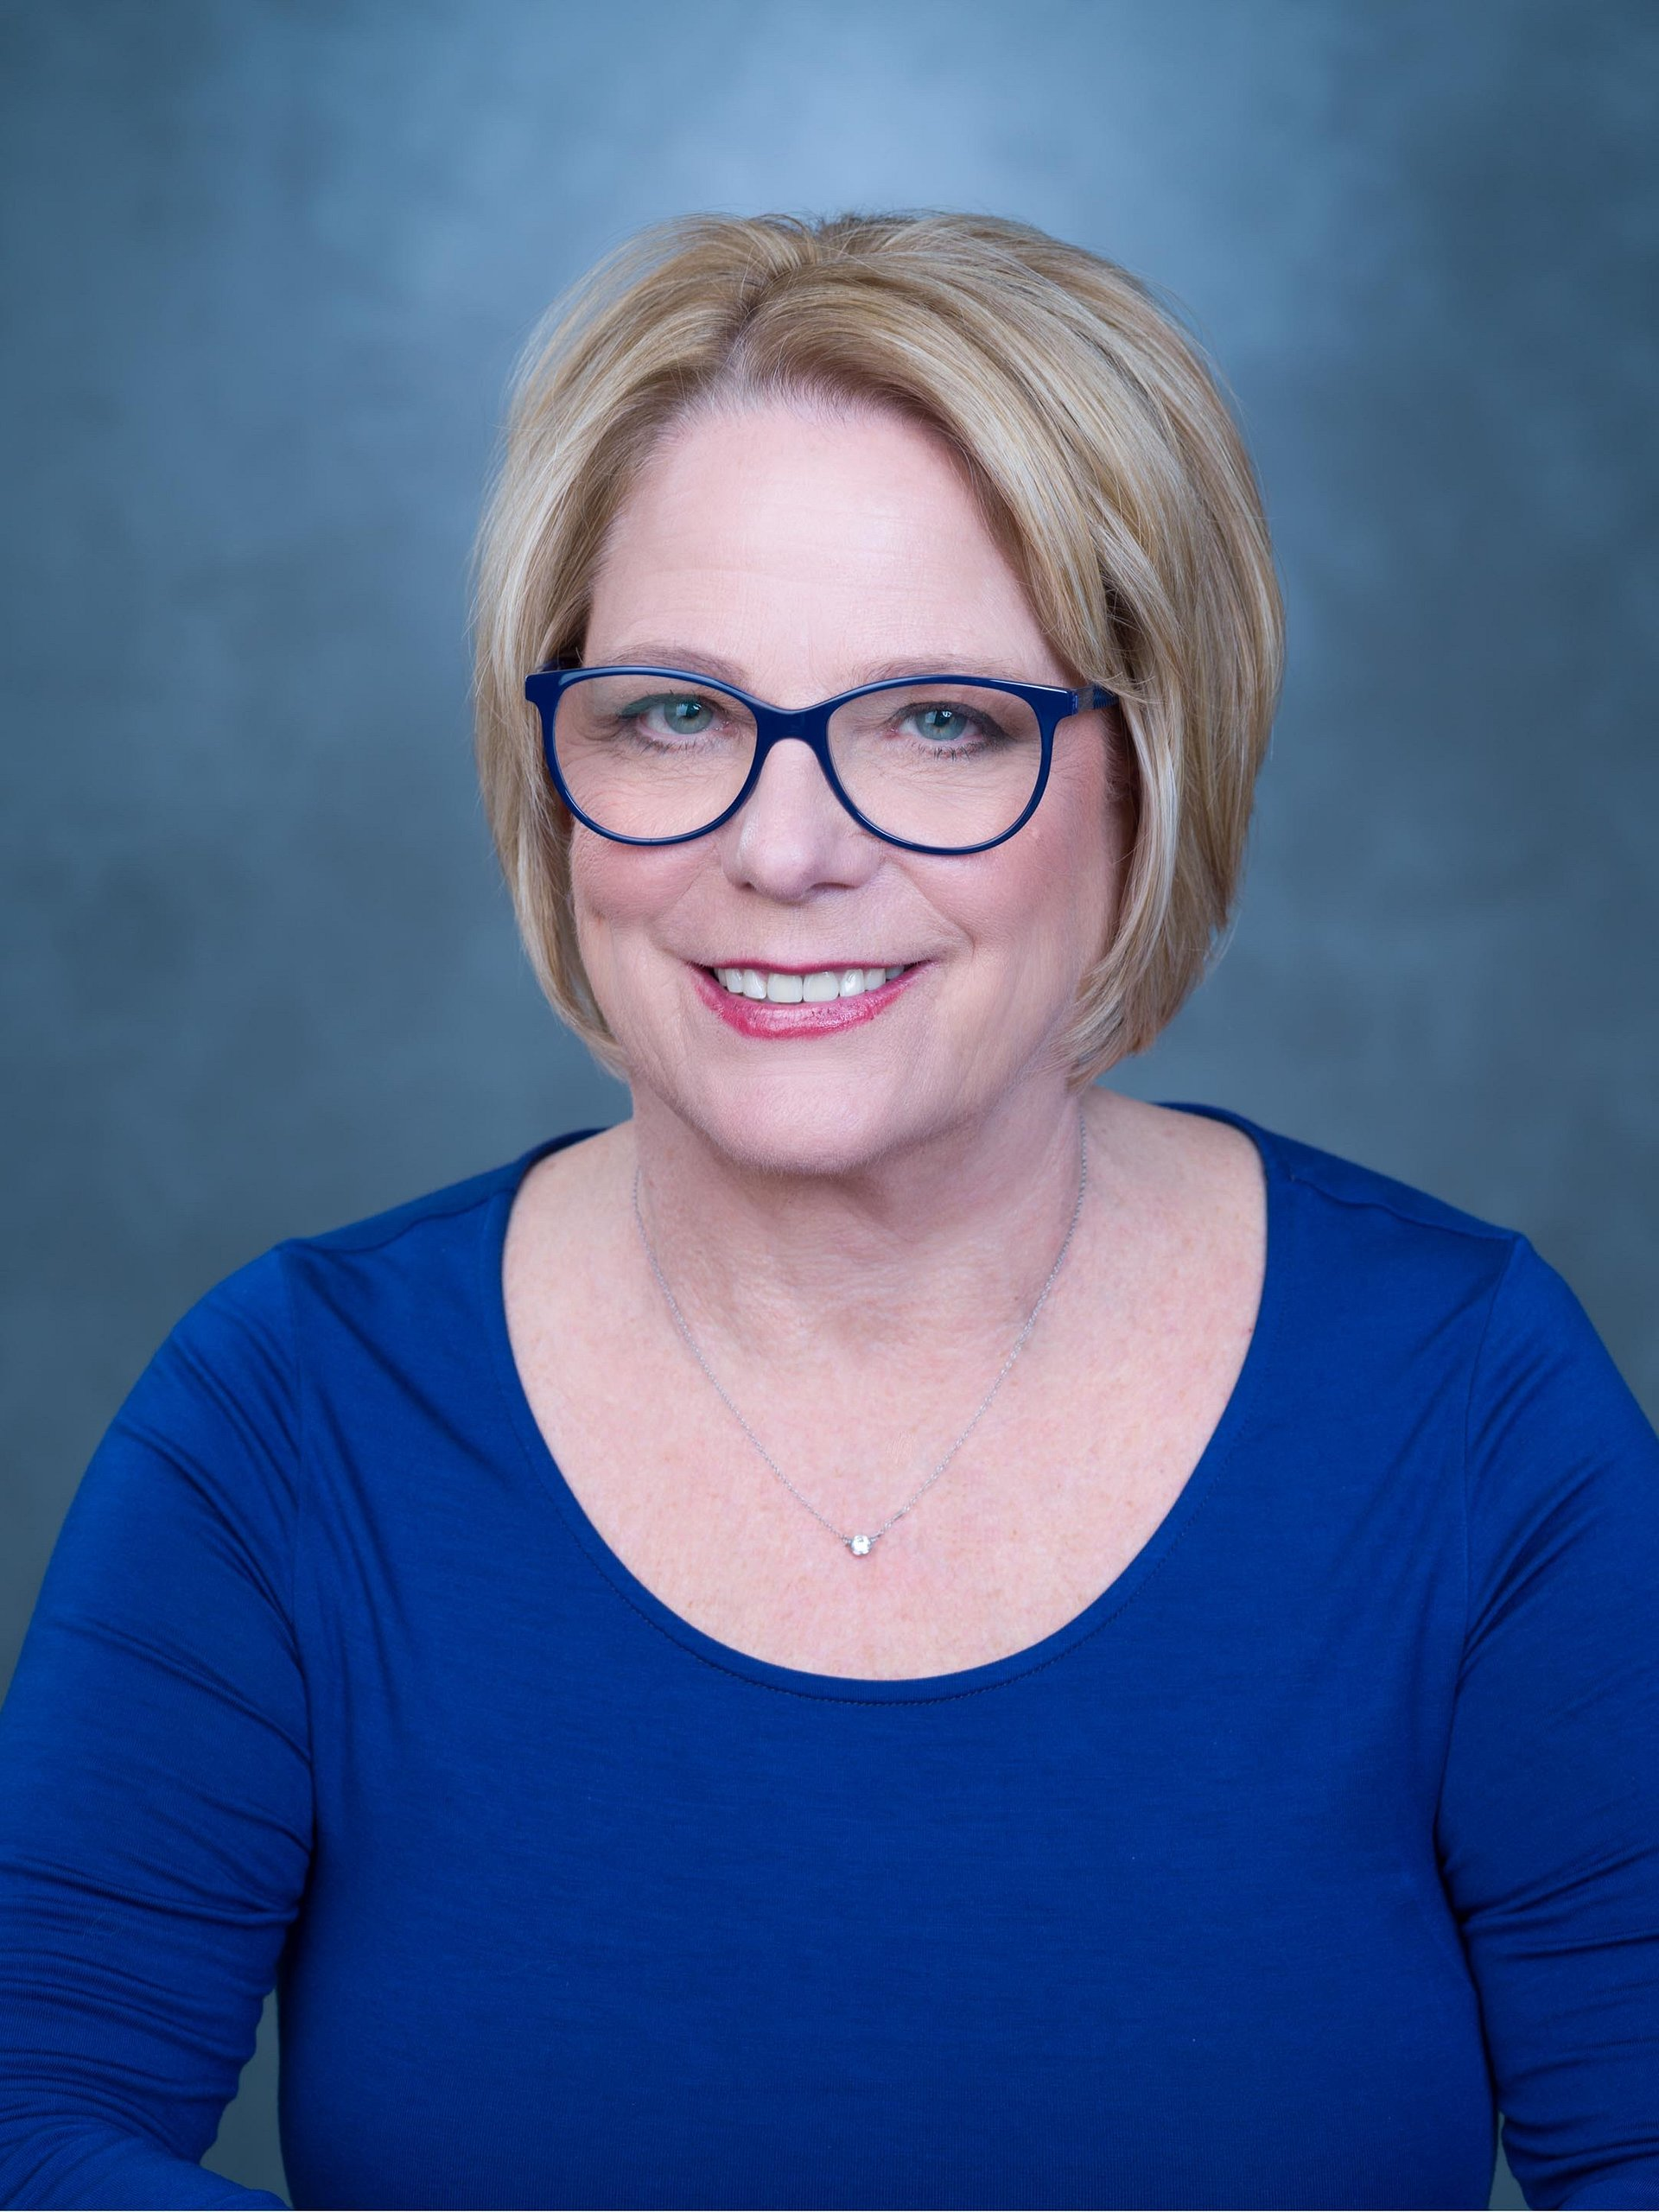 Barbara Lunsford Affiliates with the Tucson/Foothills Office of Coldwell Banker Residential Brokerage